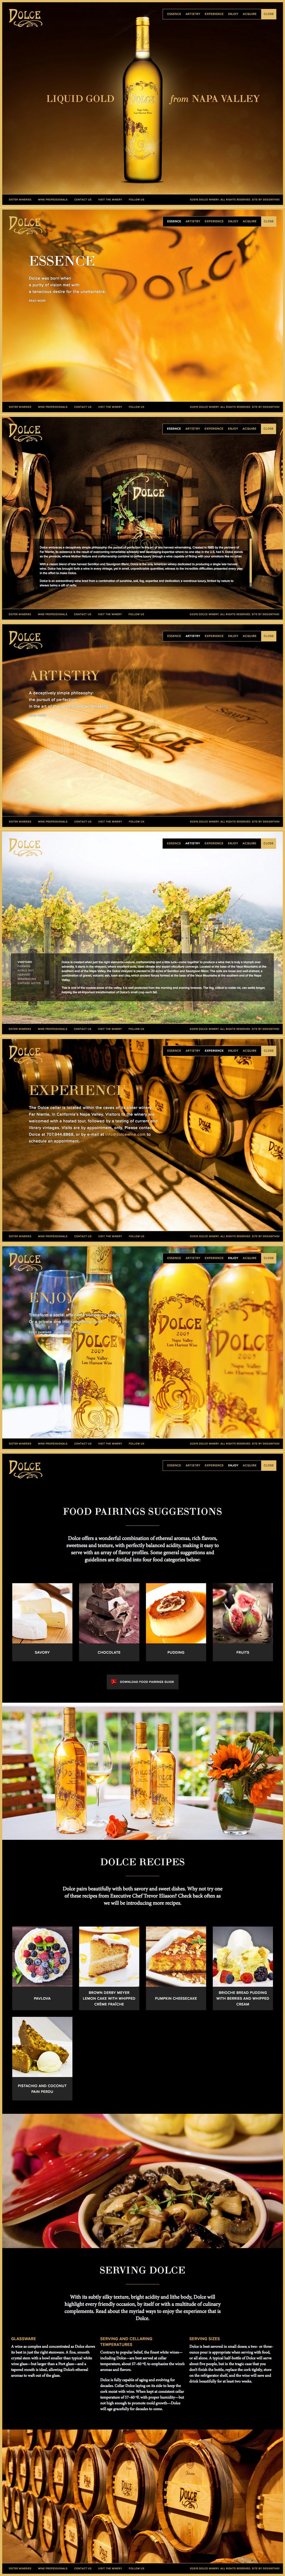 Dolce Winery   Website   by designthis!